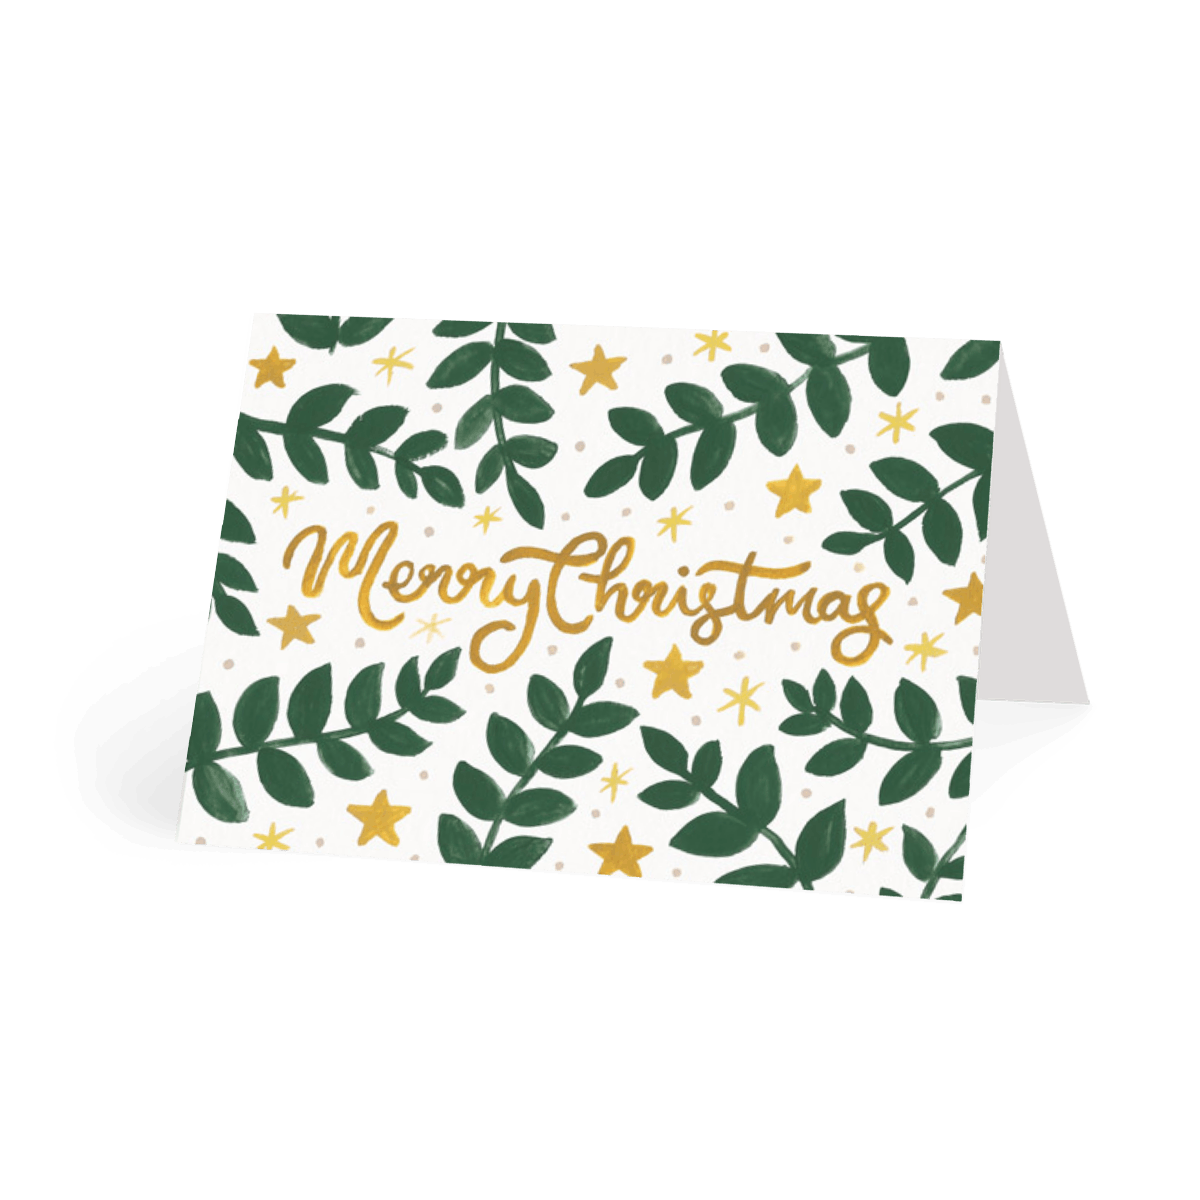 Https%3a%2f%2fwww.papier.com%2fproduct image%2f24937%2f14%2fchristmas foliage stars 6221 front 1570646183.png?ixlib=rb 1.1